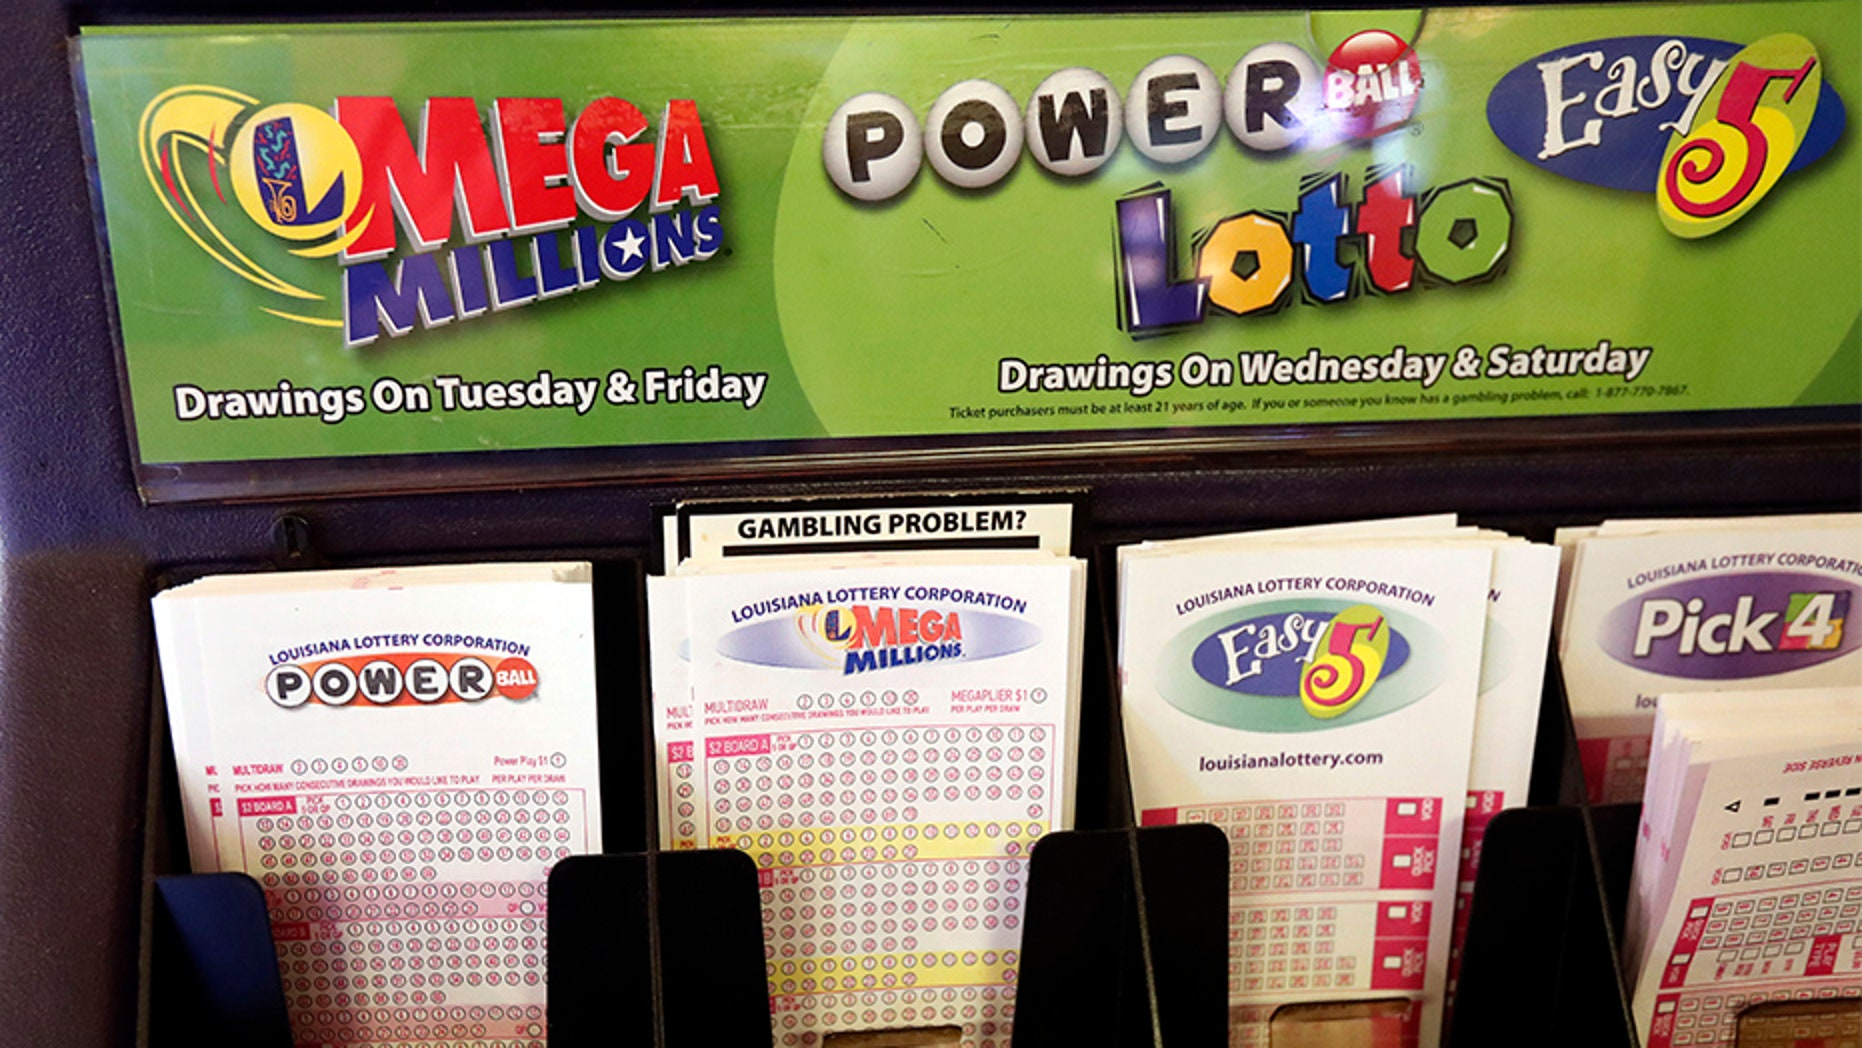 Lottery forms for Louisiana Mega Millions, Powerball and other lottery games fill the drawer at The World Bar and Grill, in Delta, La.